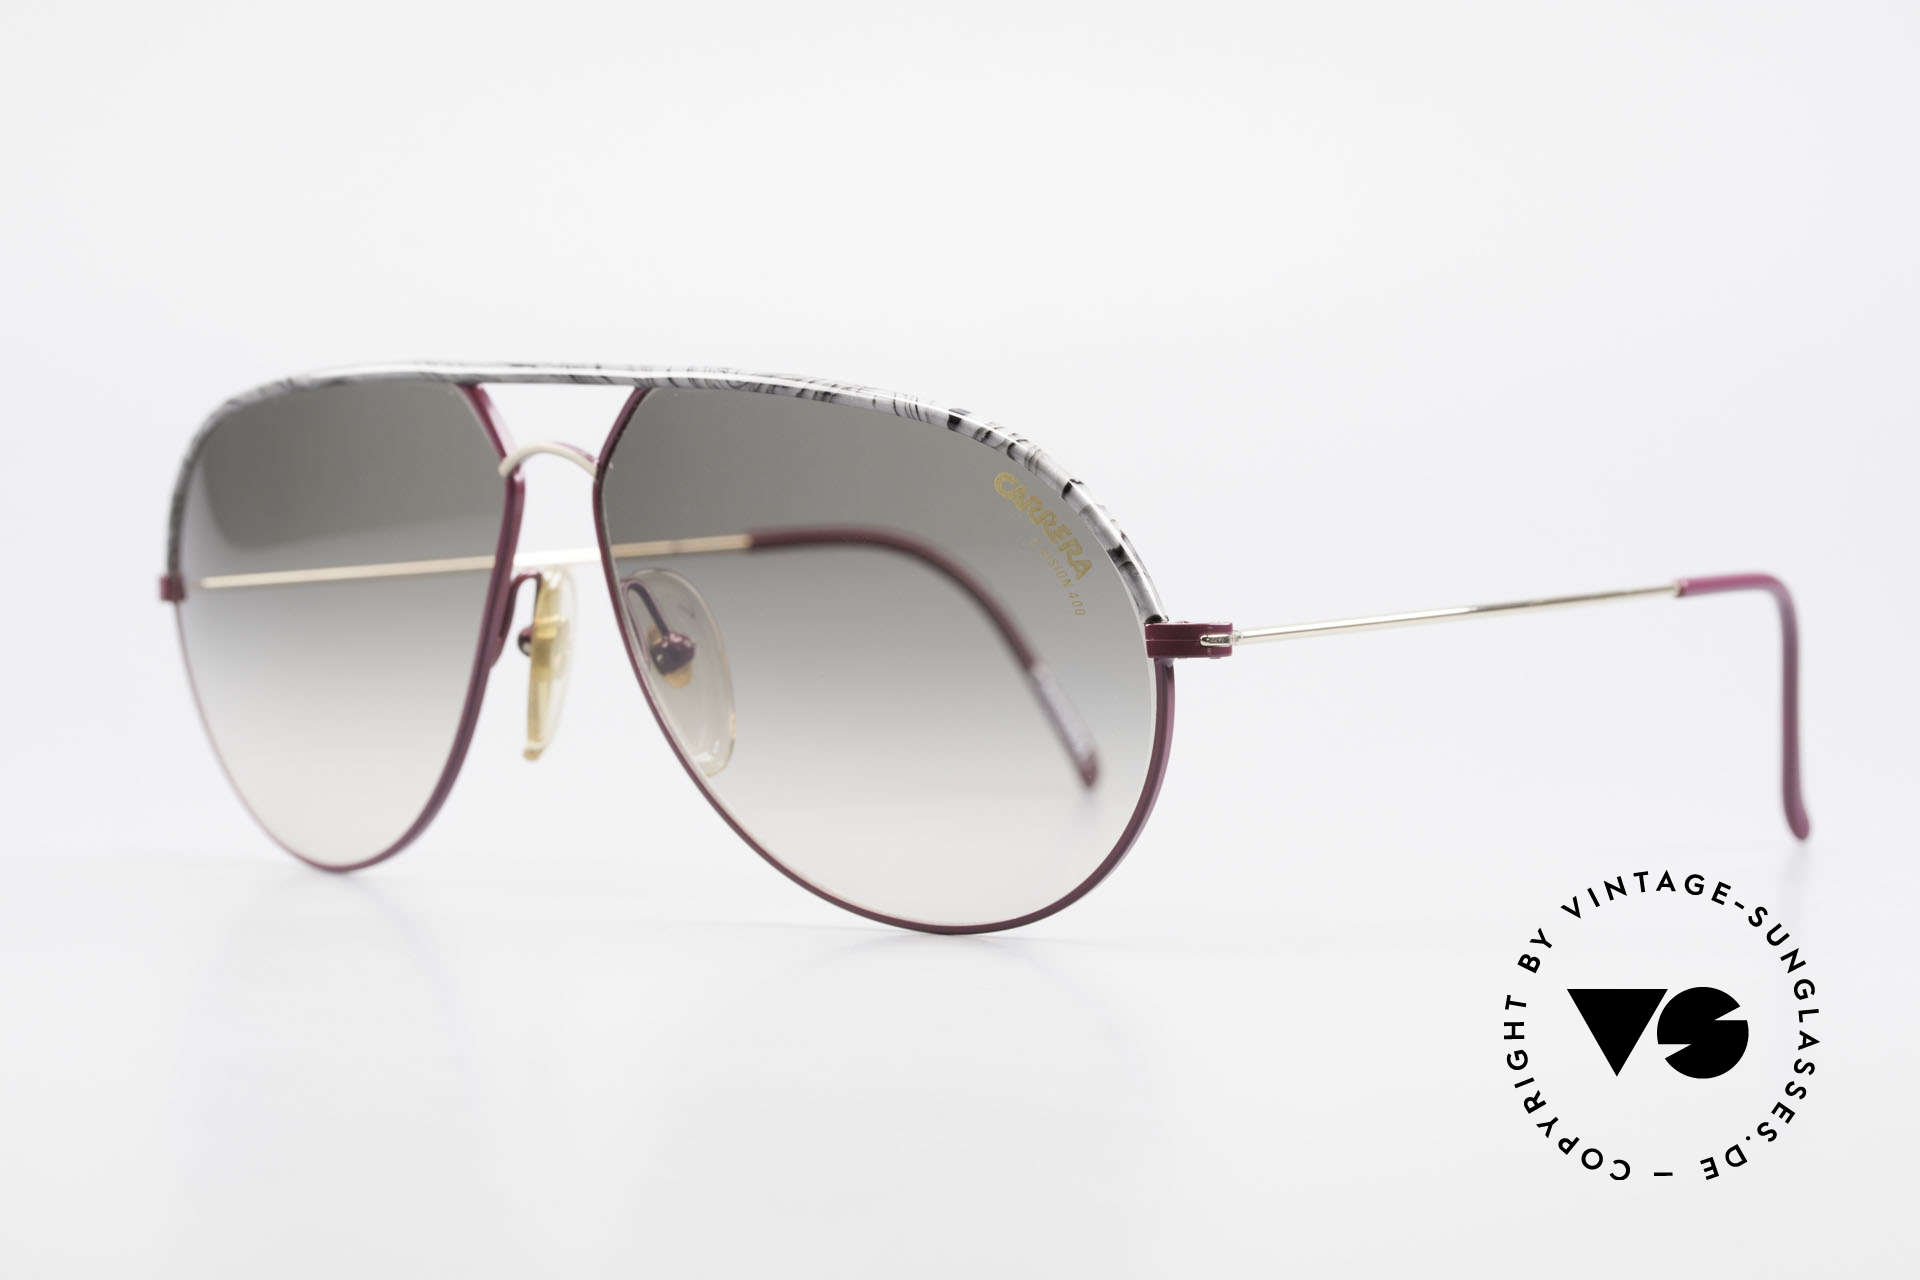 Carrera 5428 Rare Old Vintage 80's Shades, something really different in coloring and design, Made for Men and Women